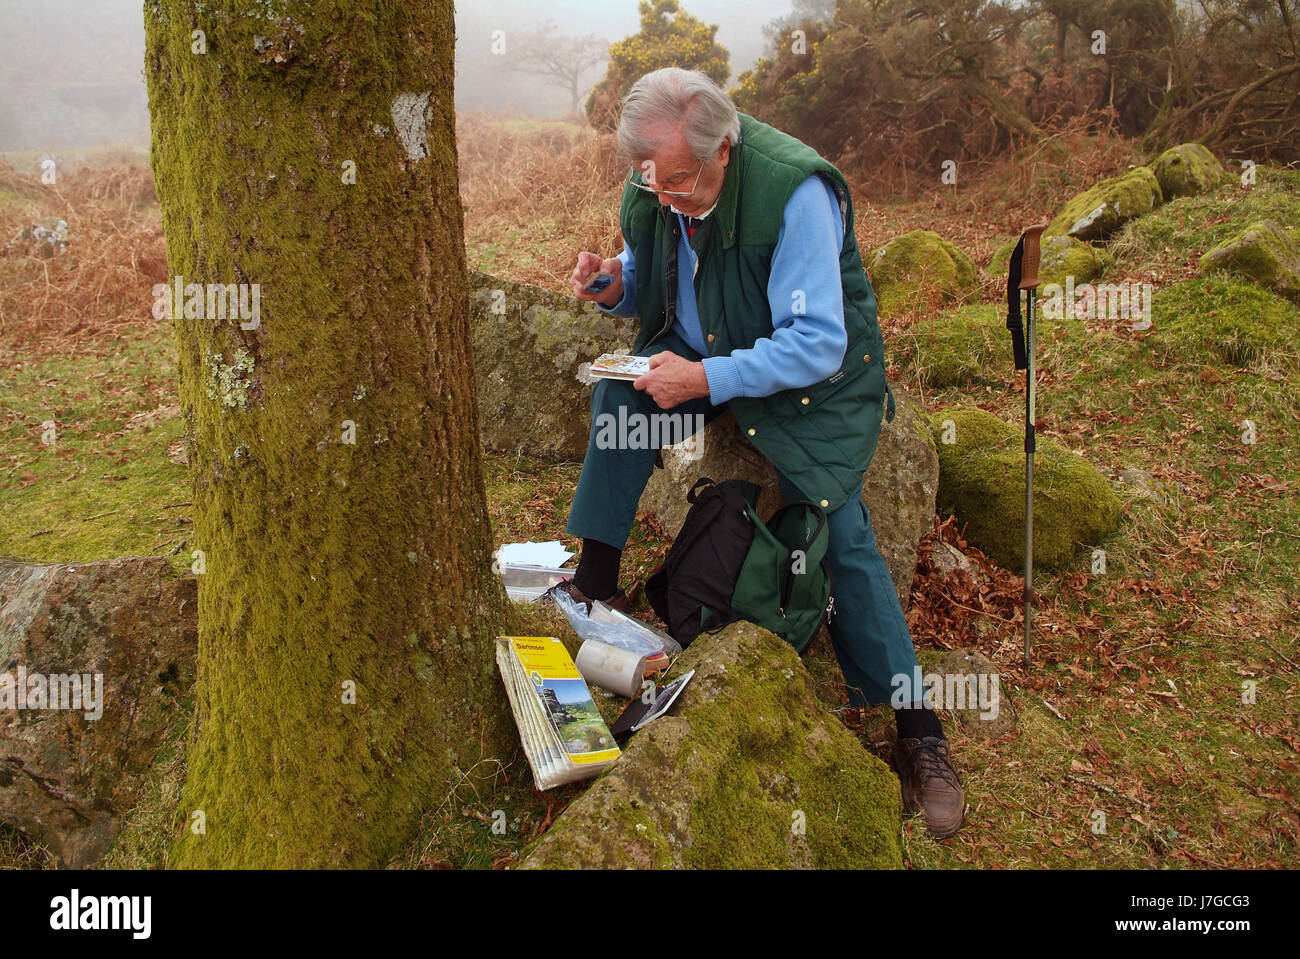 LETTERBOXING   Godfrey Swinscow at Shipley Bridge, Dartmoor showing letterboxes and the stamps from the locations Stock Photo